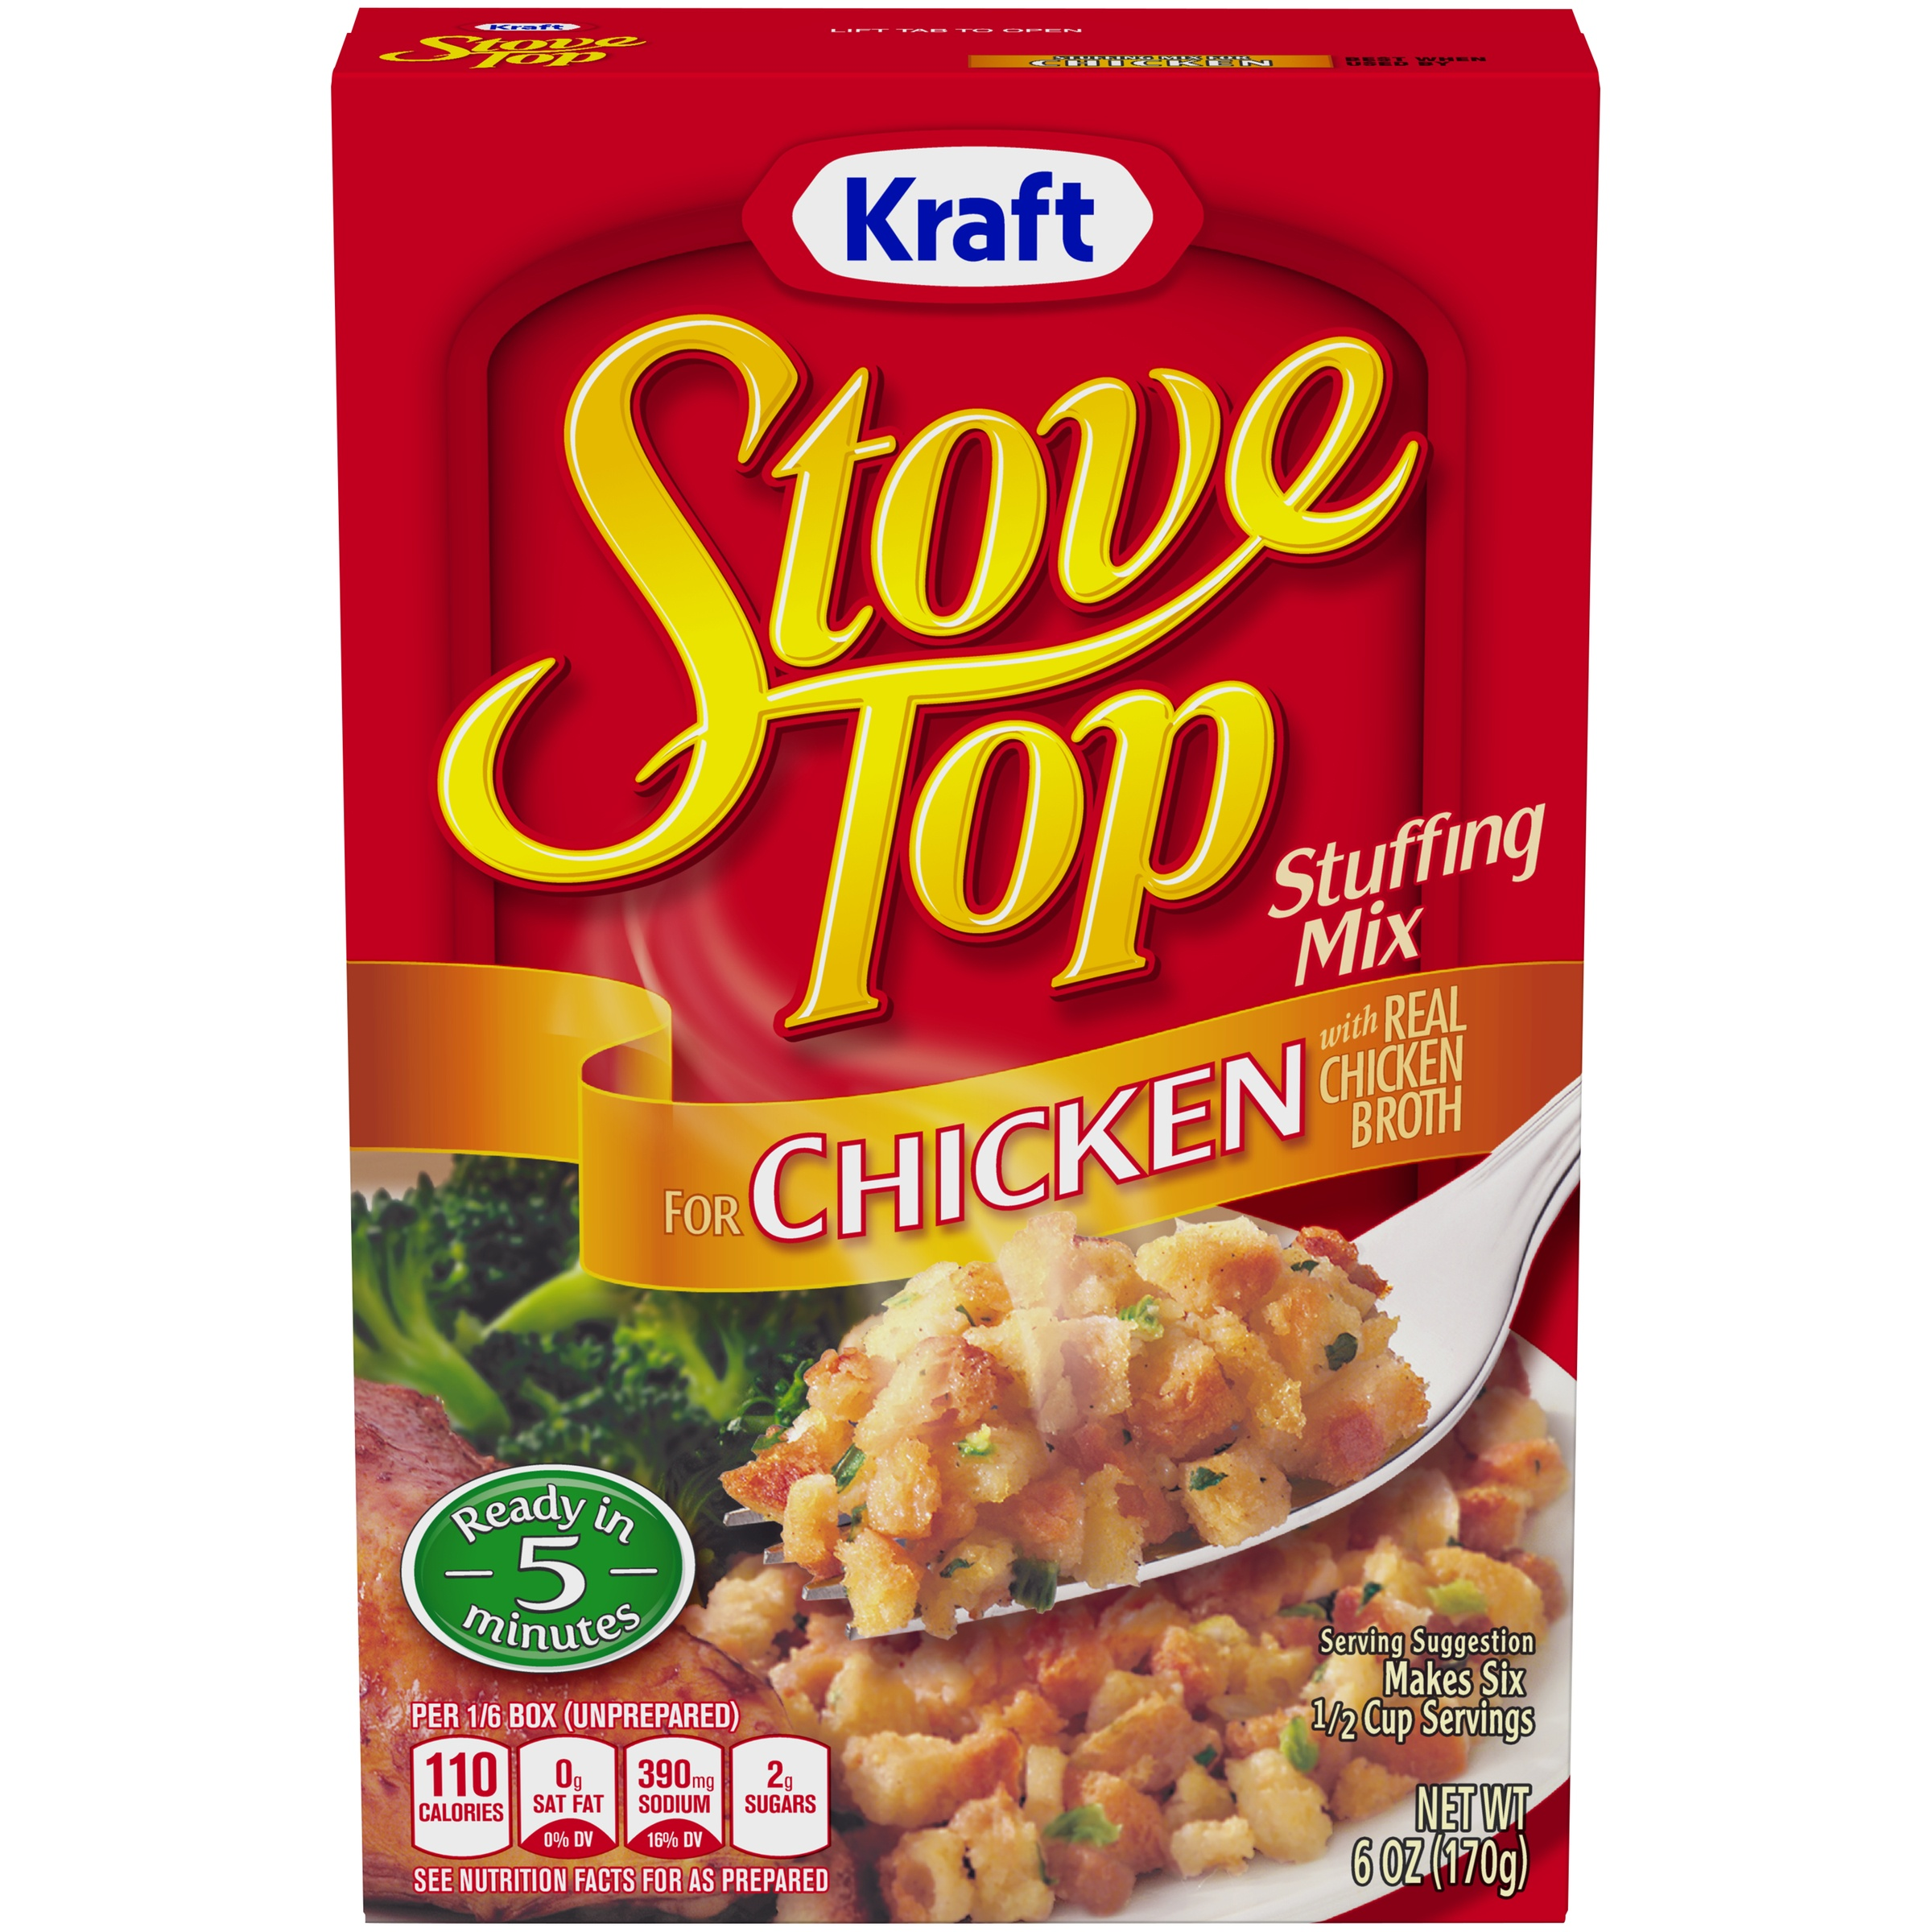 Kraft Stove Top Stuffing Mix for Chicken 6 oz. Box